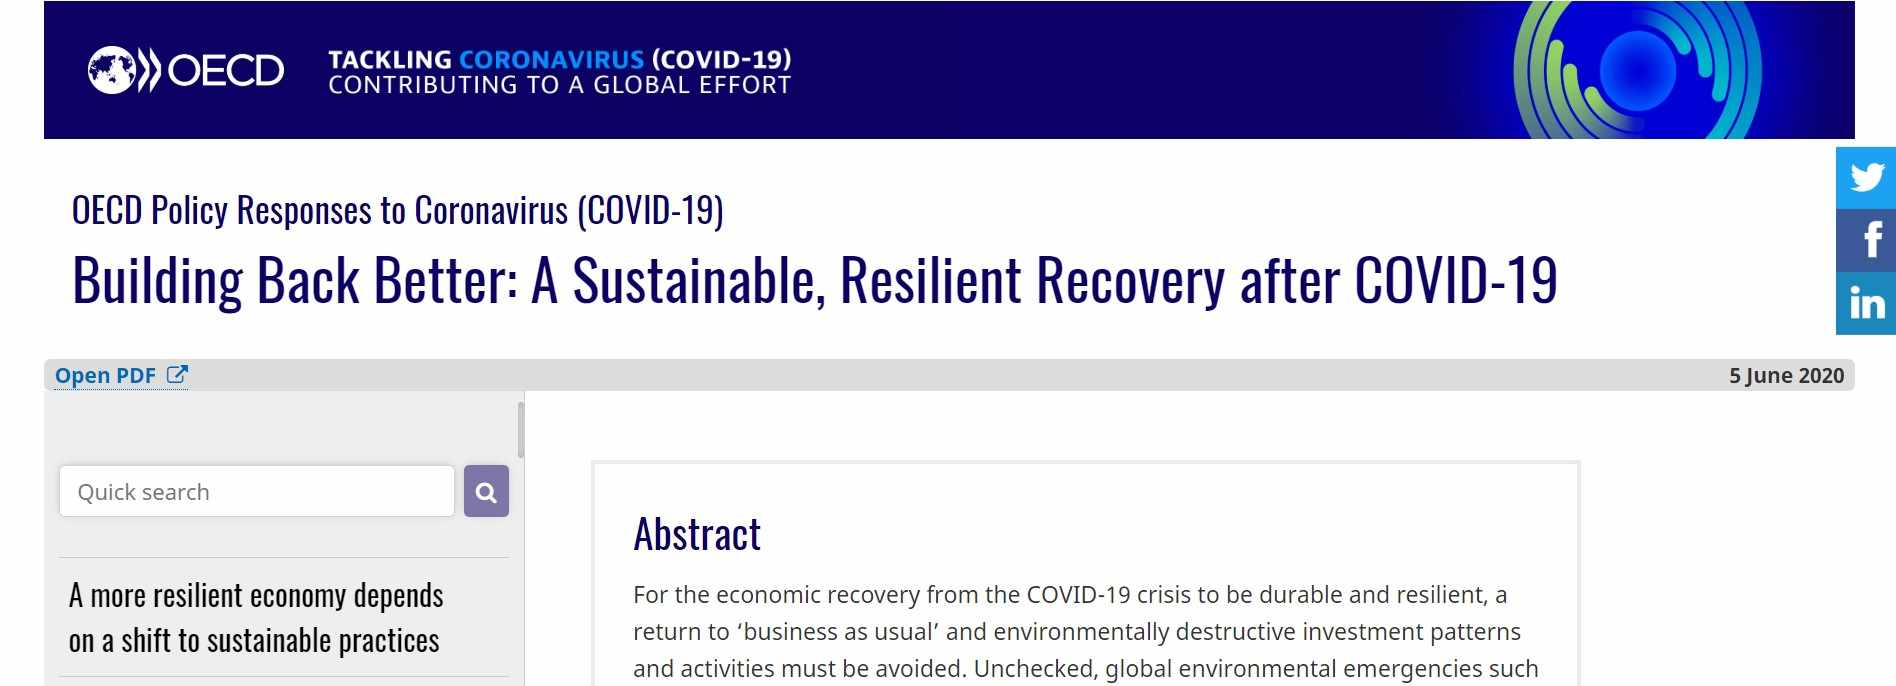 Building Back Better: A Sustainable, Resilient Recovery after COVID-19